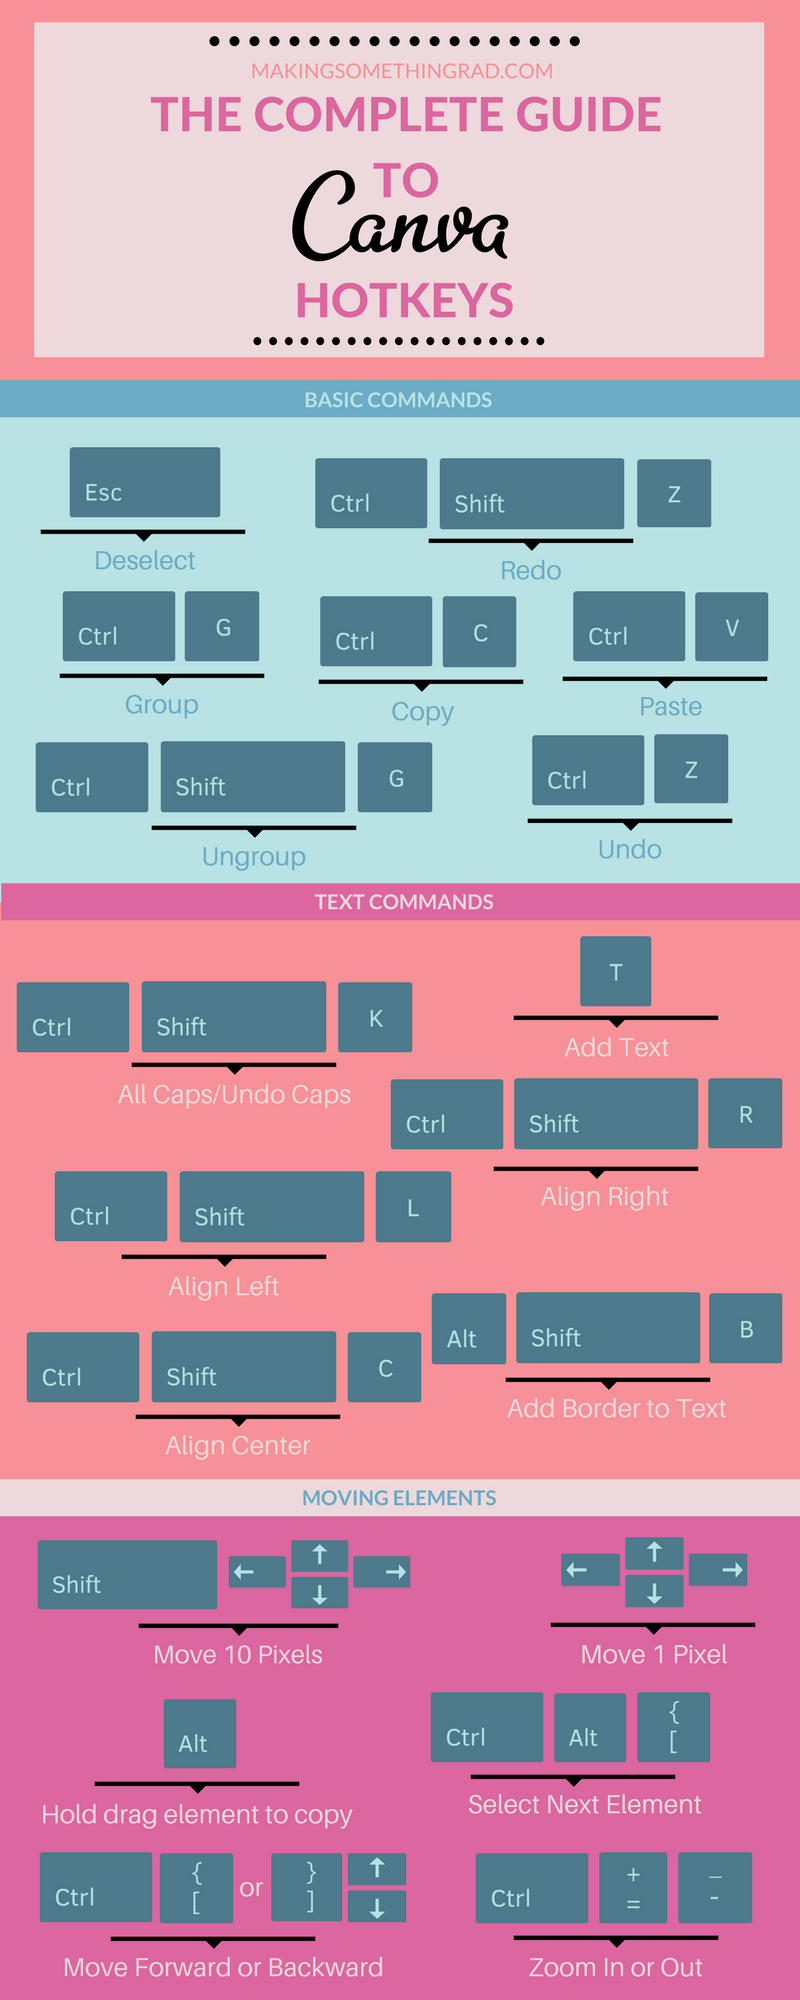 The complete guide to Canva hotkeys by MakingSomethingRad.png